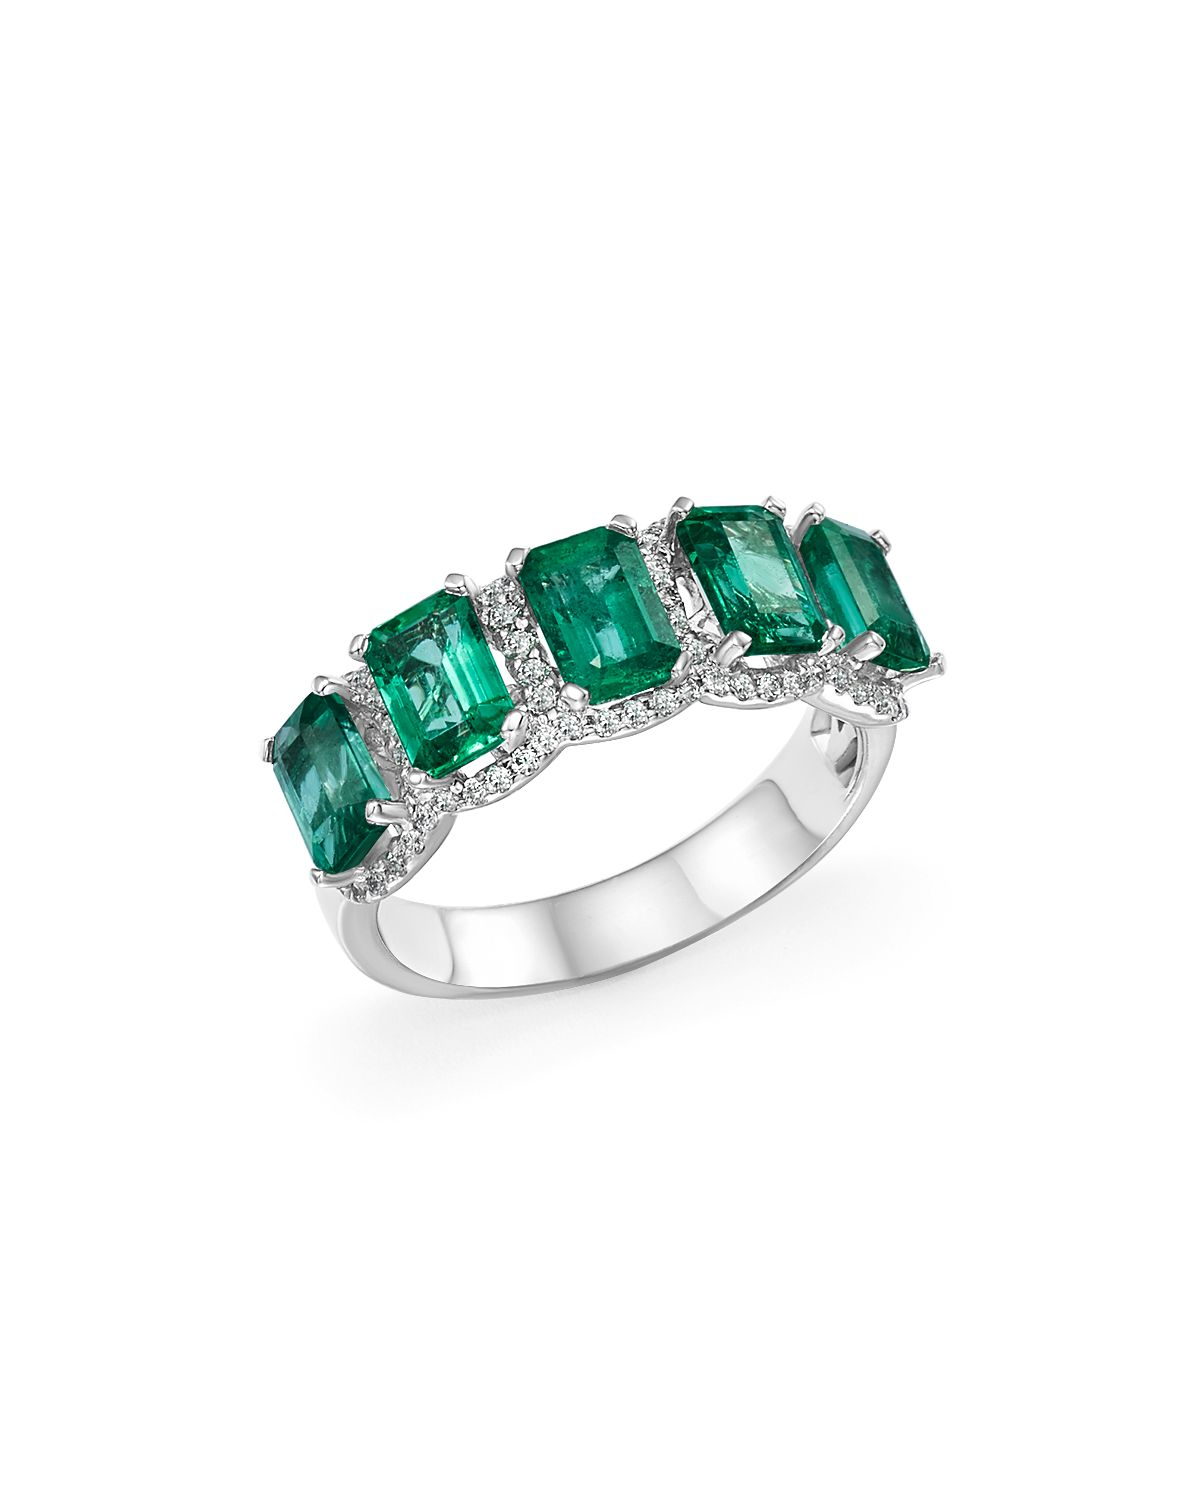 Emerald And Diamond Band Ring In 14 K White Gold   100 Percents Exclusive  by Bloomingdale's